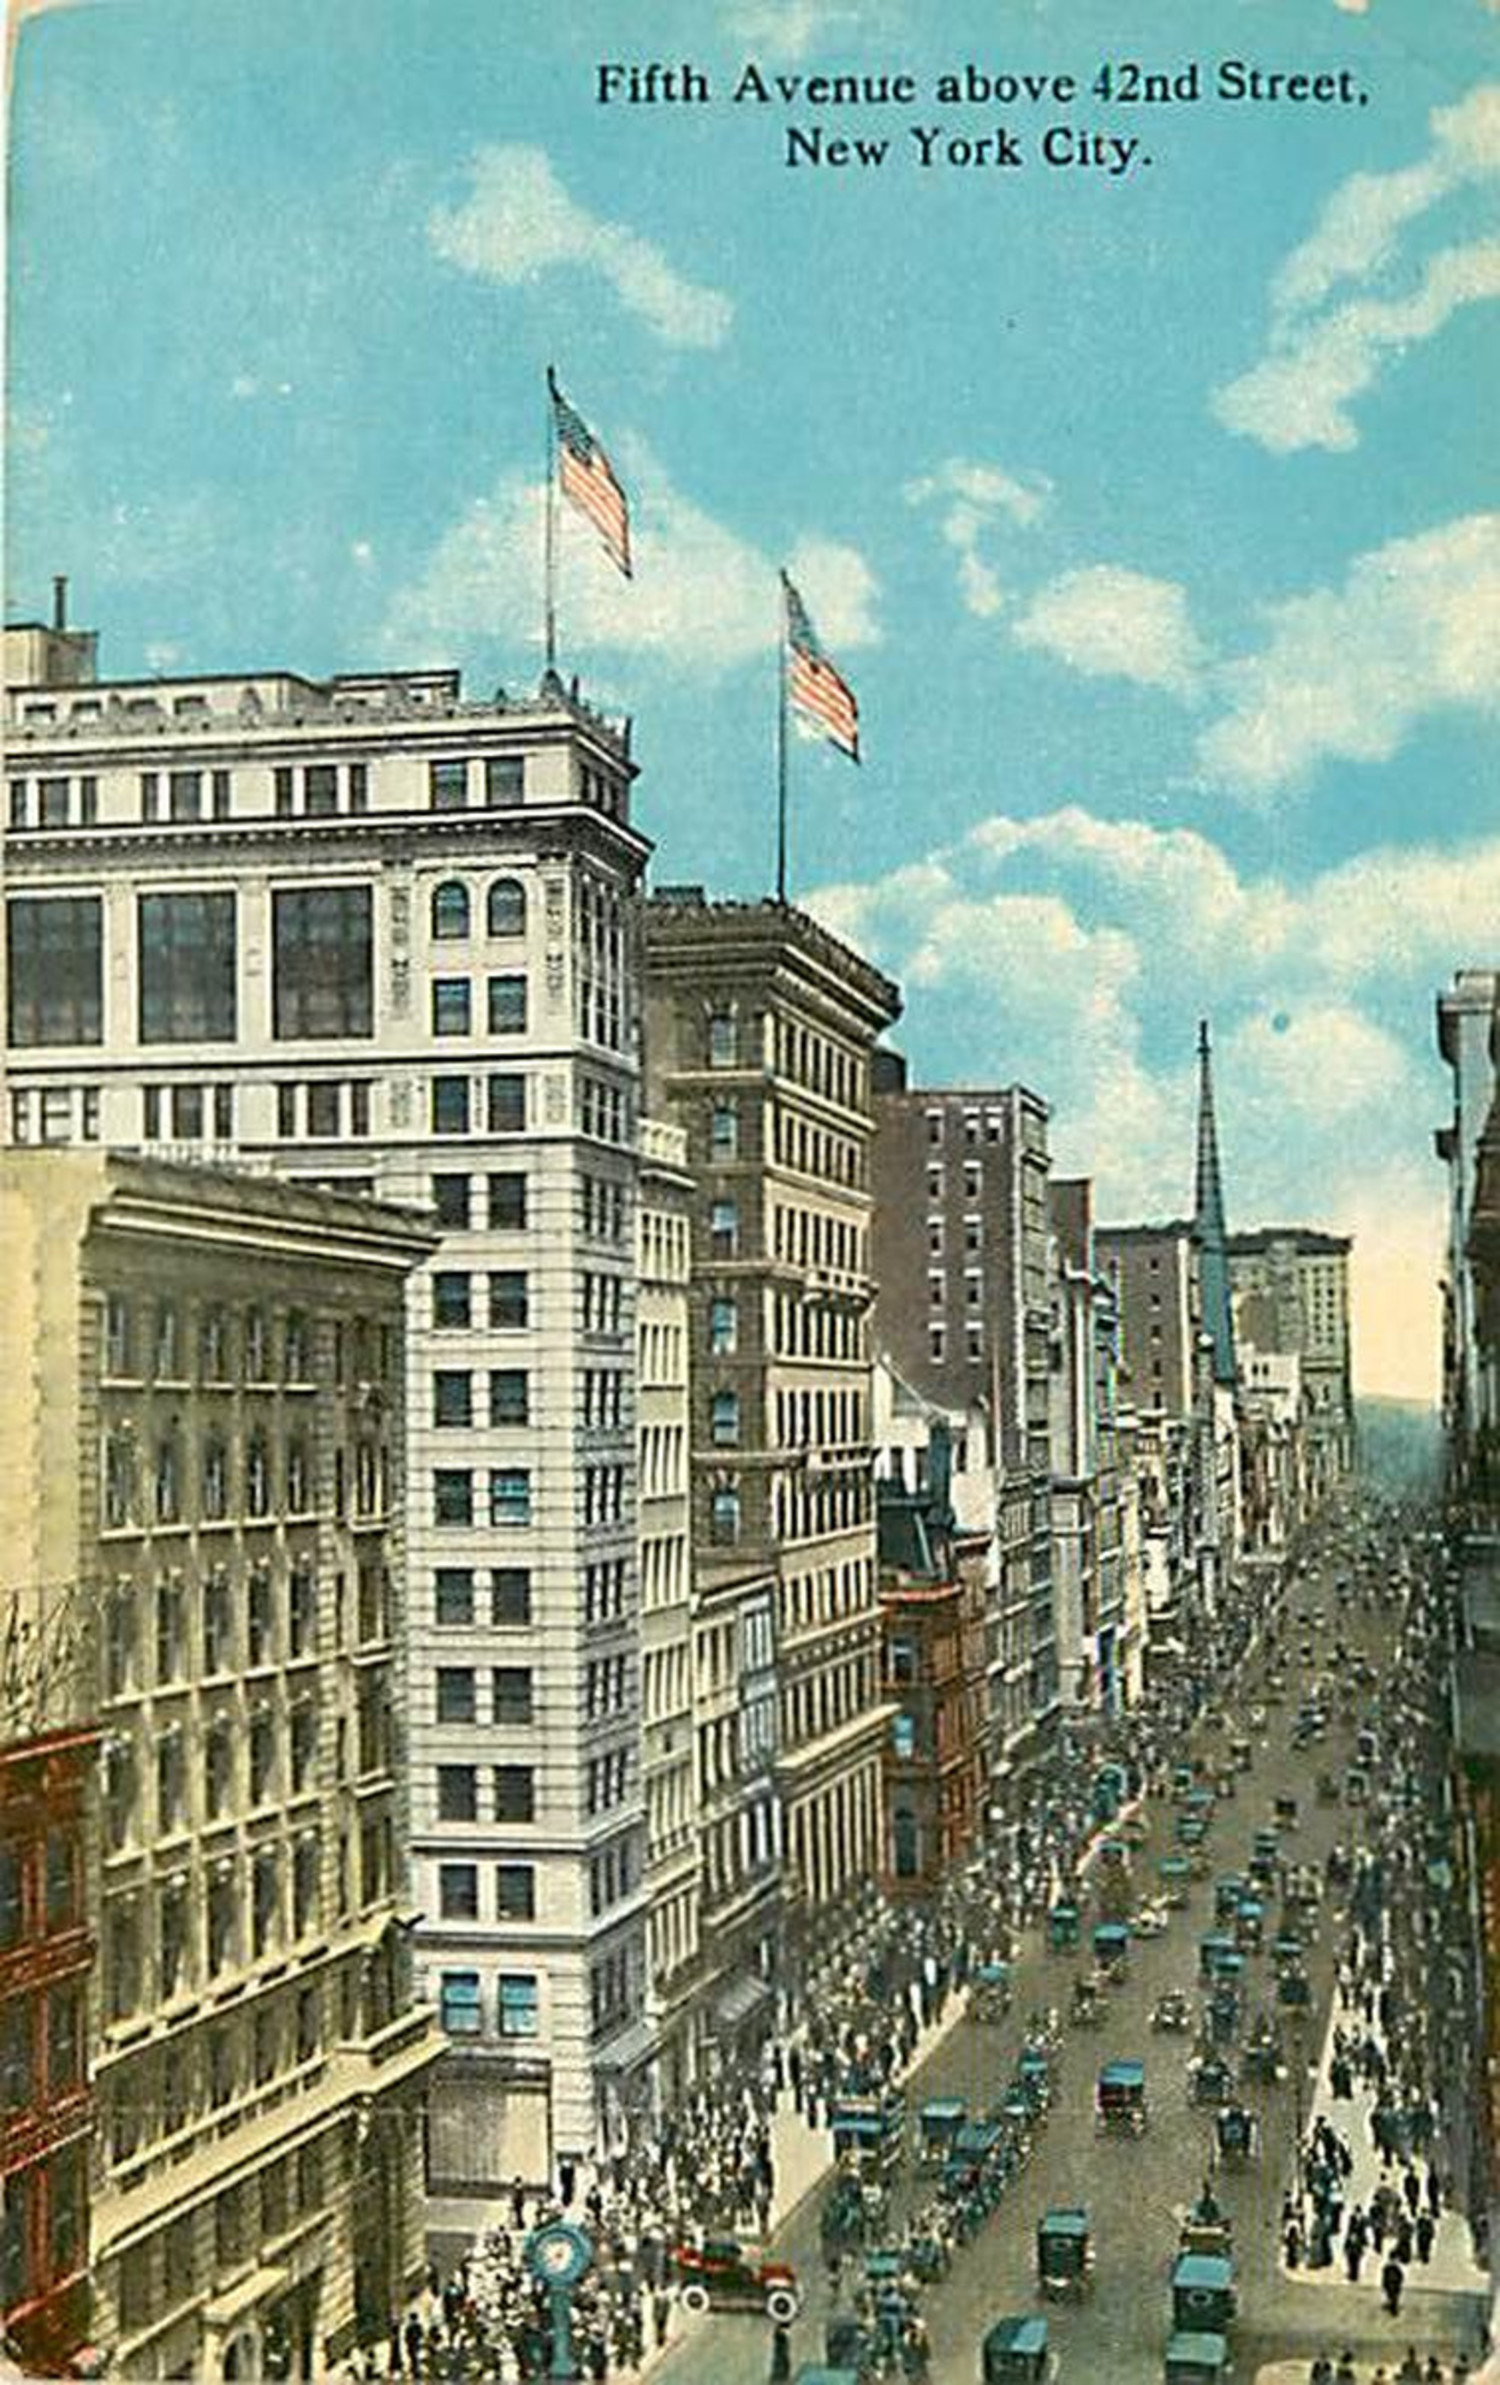 In a similar view also from around 1927, at a higher vantage point, we are looking up Fifth Avenue north from 42nd Street. Vehicular traffic flows both ways as crowds throng the sidewalks. On the west side of the street can be seen the steeple of St. Thomas Episcopal Church. Beyond the church, the last building visible before the southern tip of Central Park is the Plaza Hotel.